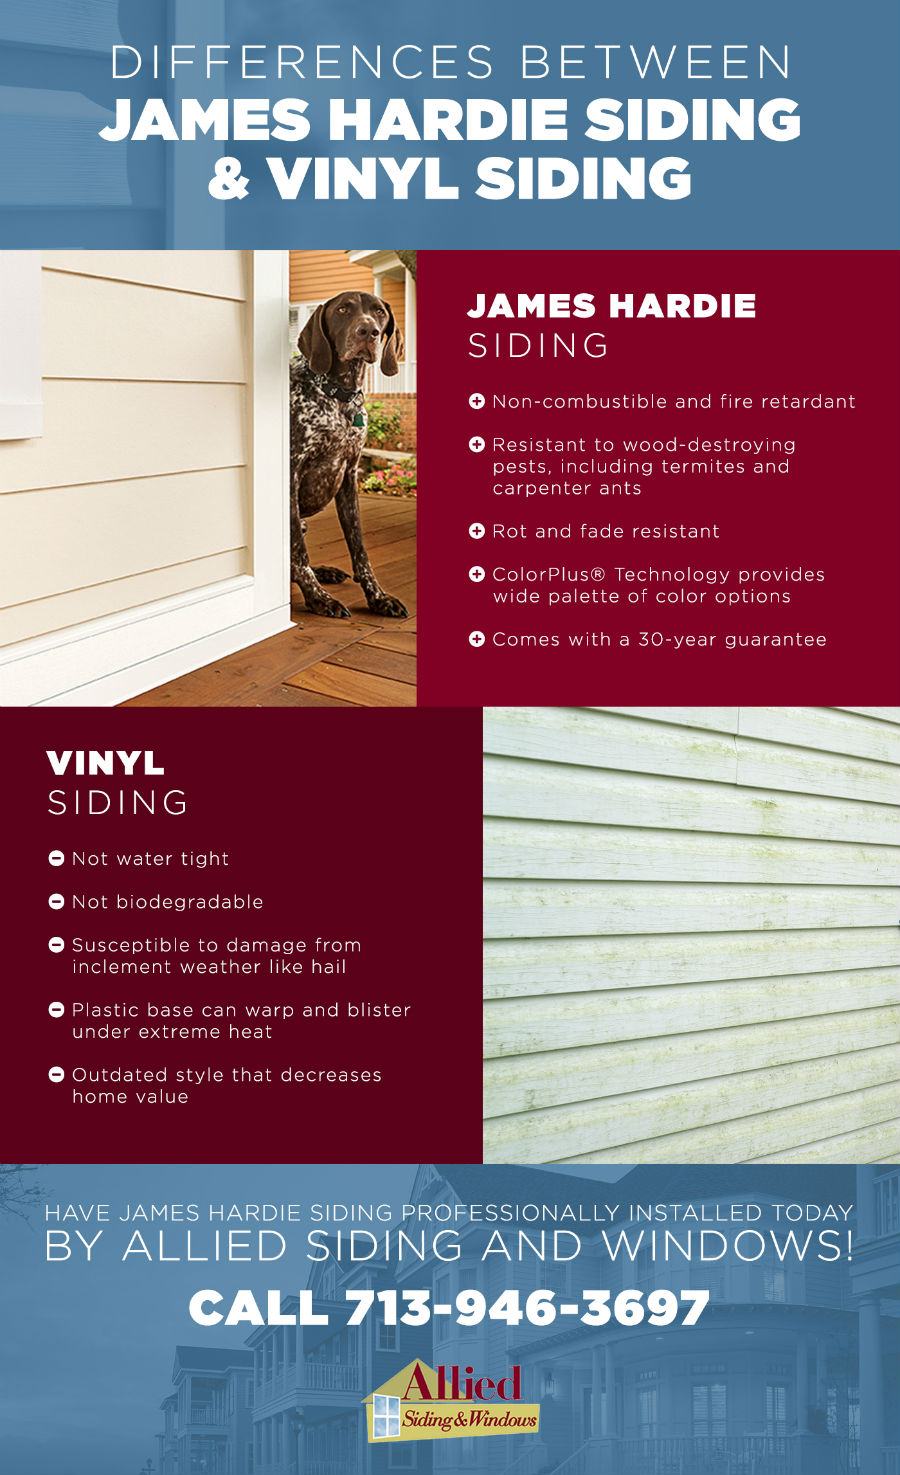 Differences Between James Hardie Siding Amp Vinyl Siding